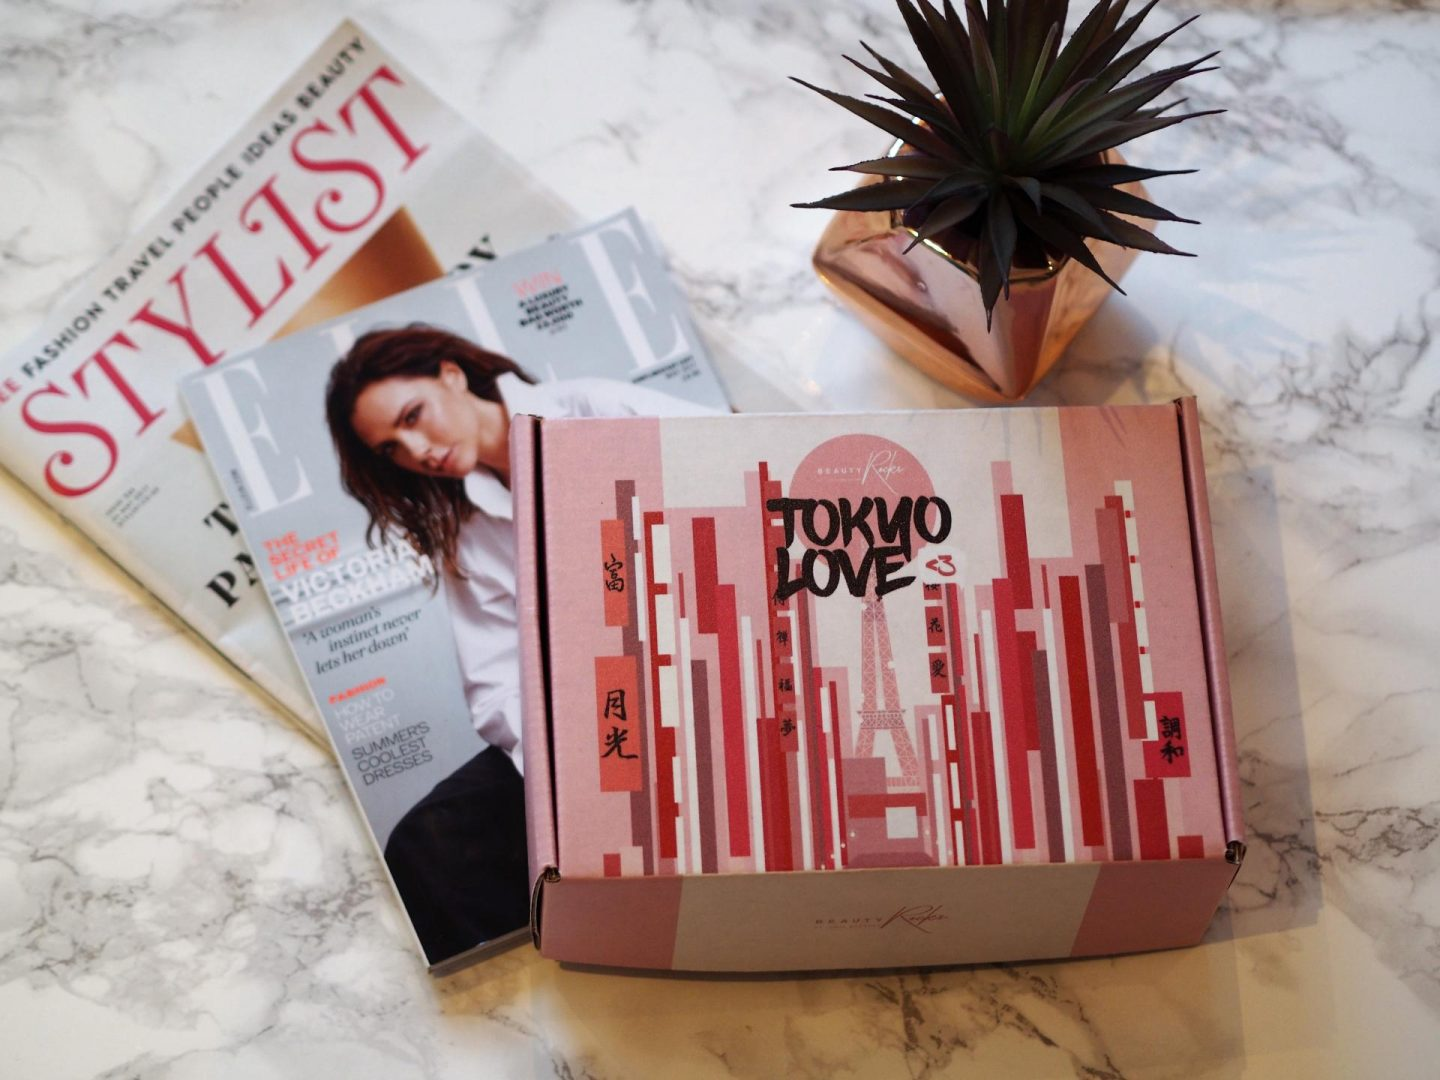 From Tokyo With Love: An Ode To Japanese Beauty